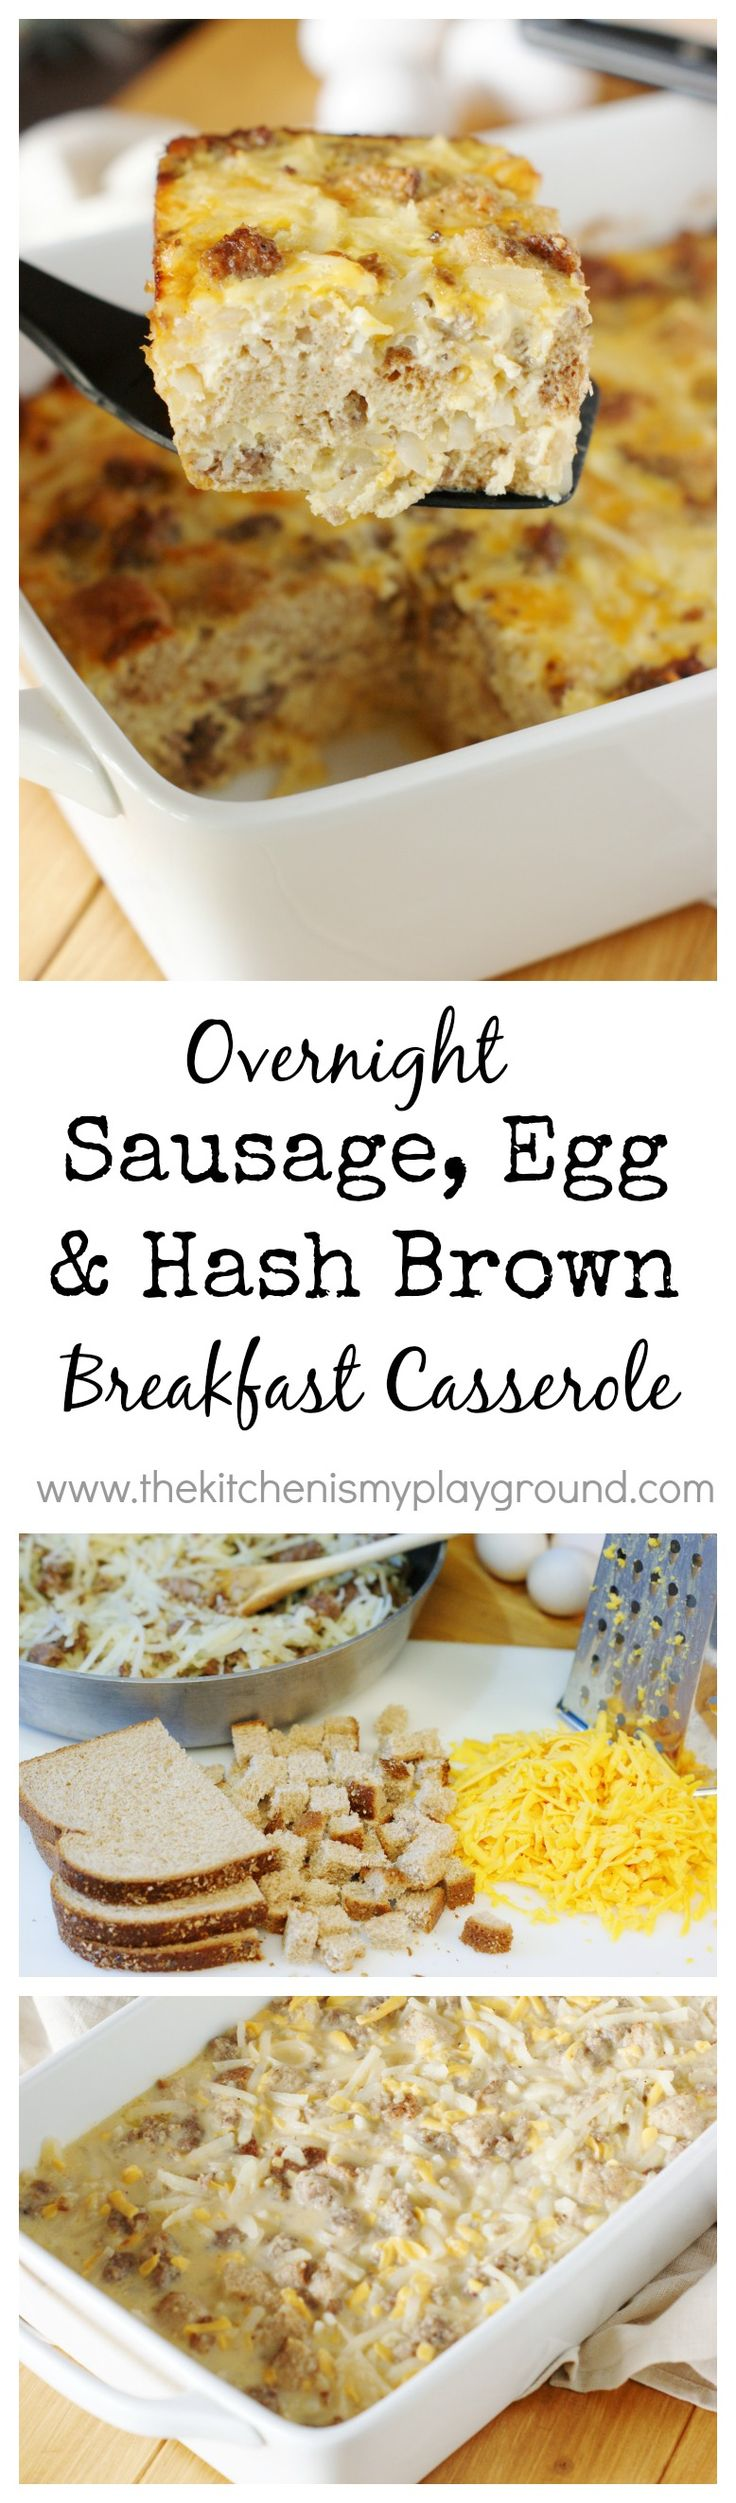 Overnight Sausage, Egg and Hash Brown Breakfast Casserole ~ whip up a hearty breakfast casserole your family will love, with a low-maintenance morning for you! www.thekitchenismyplayground.com